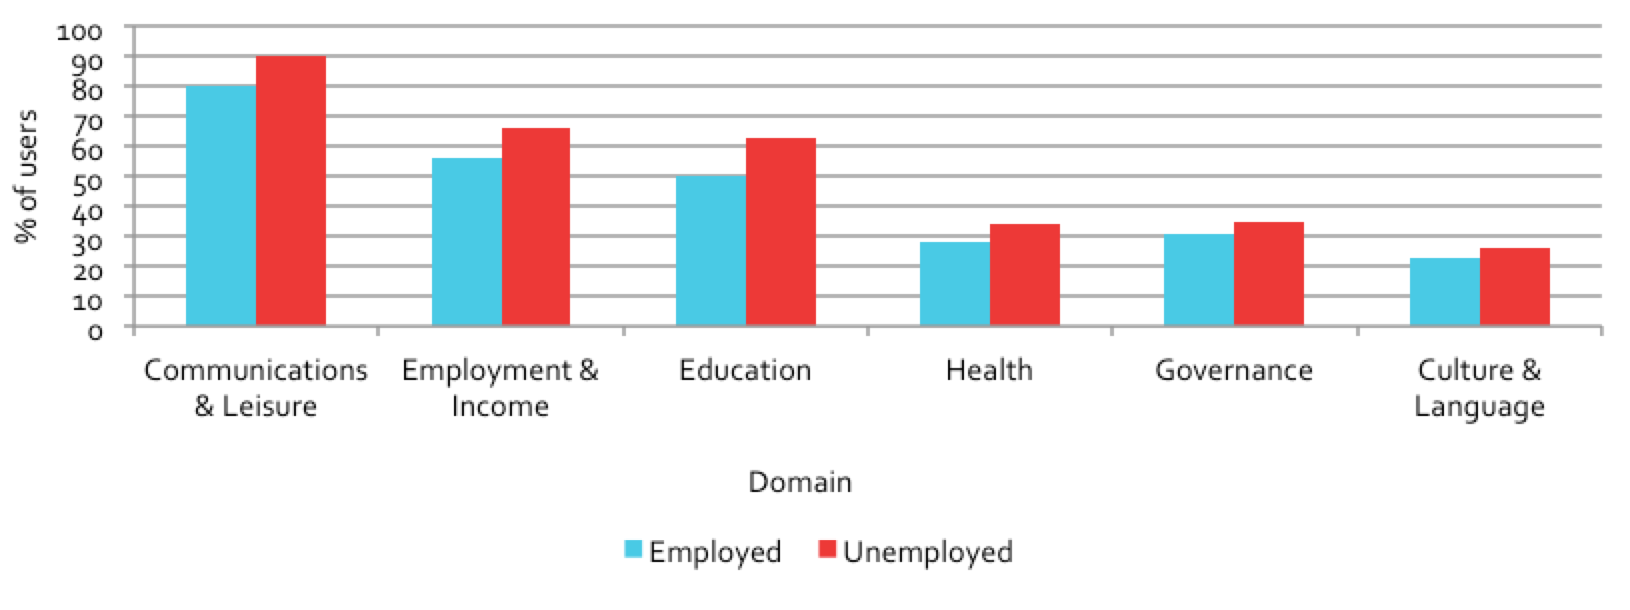 Figure 5.11: Domain usage, by employed vs. unemployed users